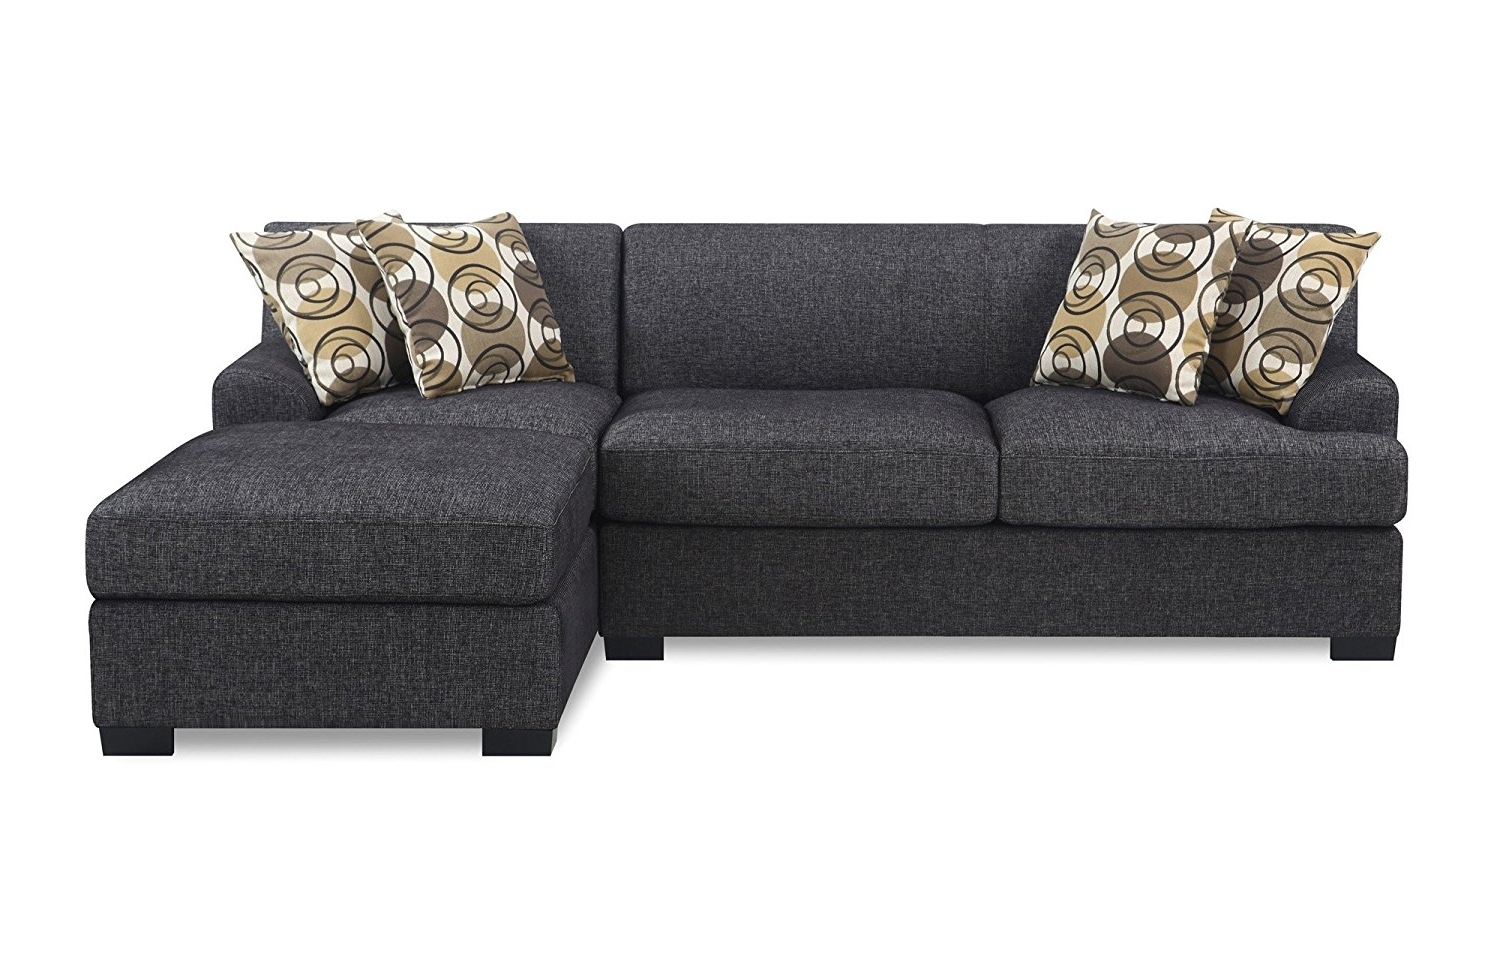 Well Liked Amazon: Bobkona Benford 2 Piece Chaise Loveseat Sectional Sofa With Regard To Loveseats With Chaise (View 15 of 15)